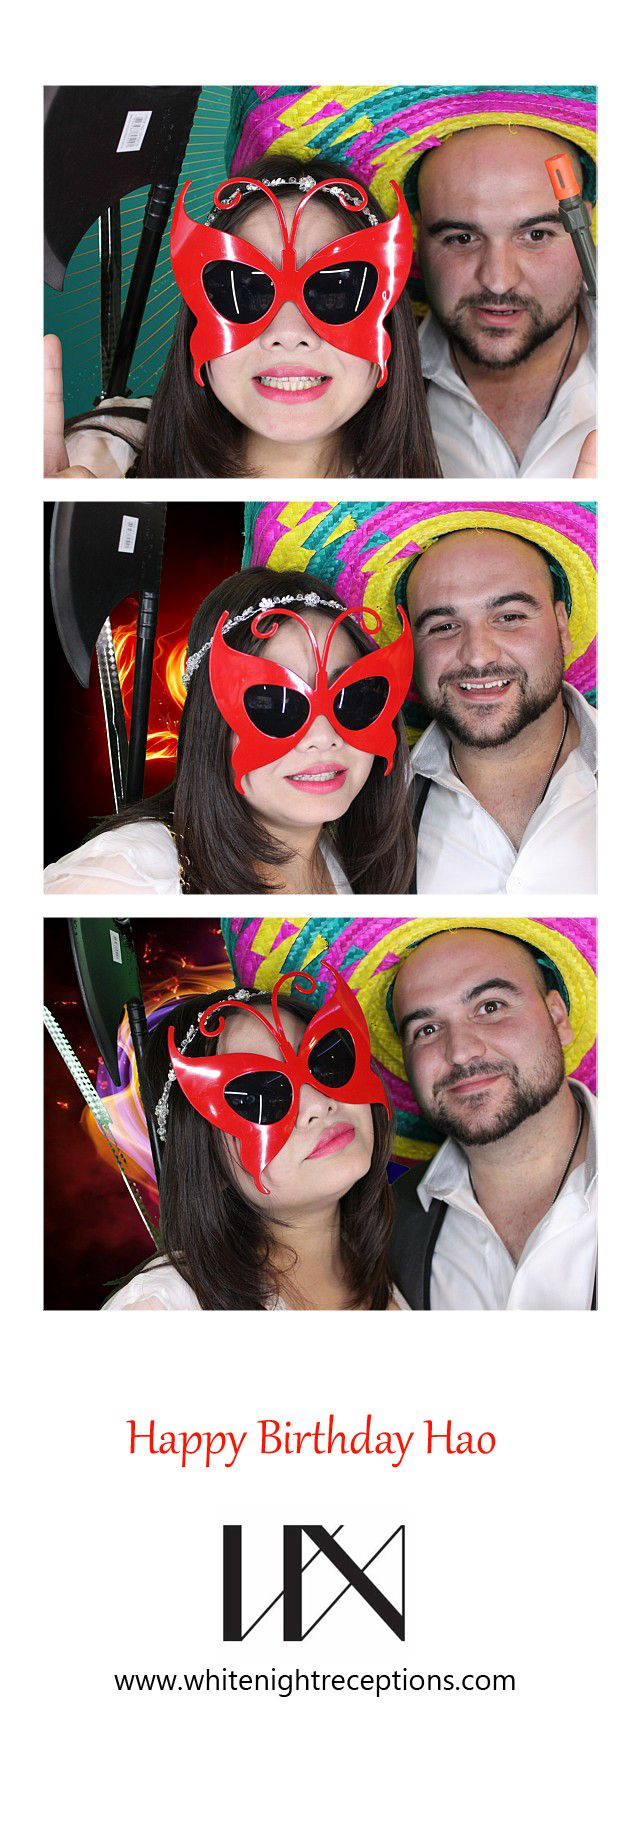 White Night Receptions Photobooth